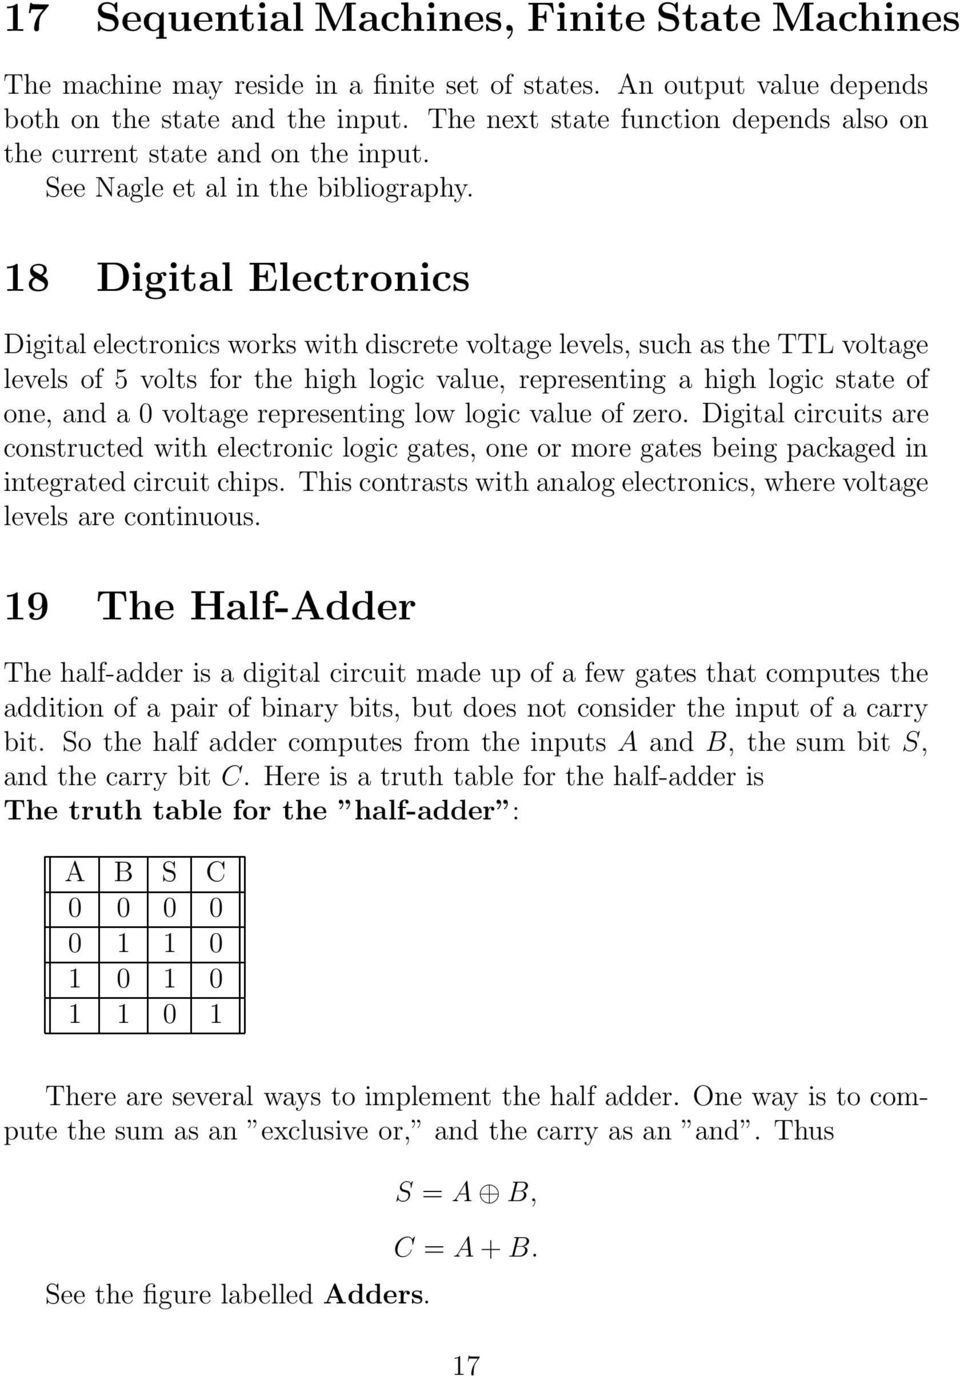 Logic Boolean Algebra And Digital Circuits Pdf Bit Binary Full Adder Gate Analog Ic Design 18 Electronics Works With Discrete Voltage Levels Such As The Ttl